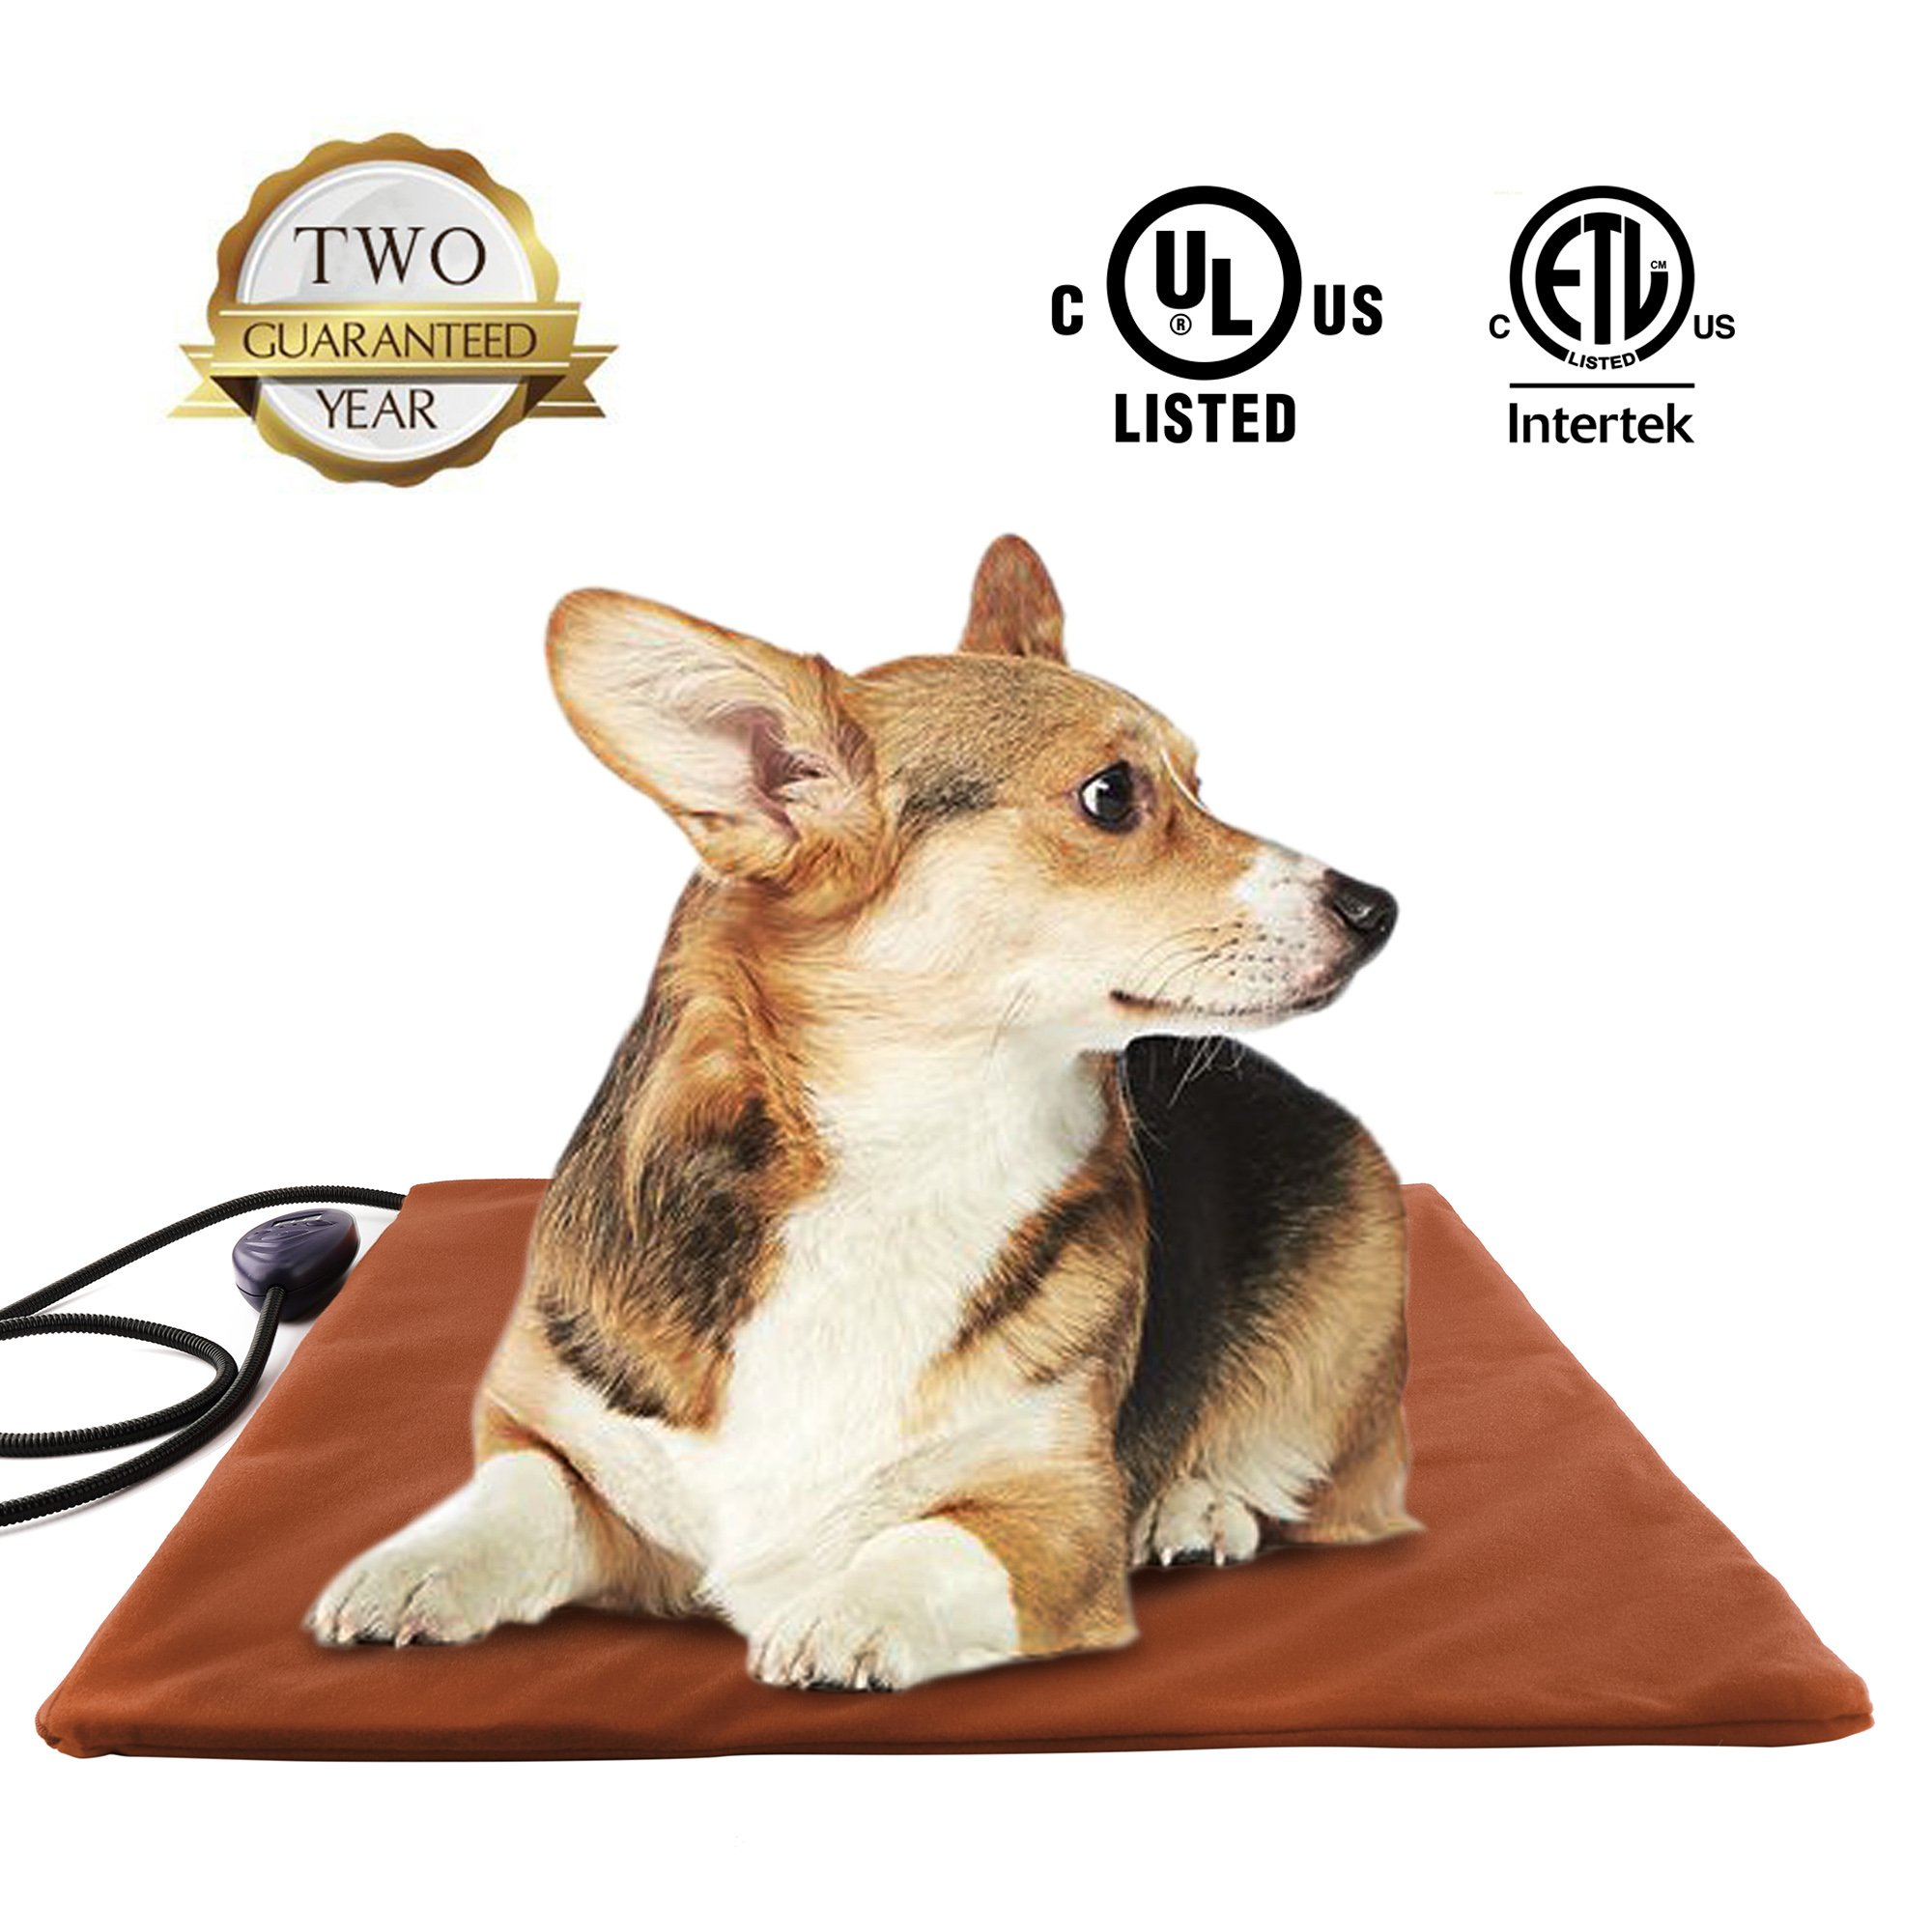 Pet Heating Pad Large,Electric Heated Dog Beds Pad,Dogs Cats Waterproof Adjustable Warming Mat with Chew Resistant Steel Cord,Soft Removable Cover,Overheating Protection(Square 50cm, Brown) ...